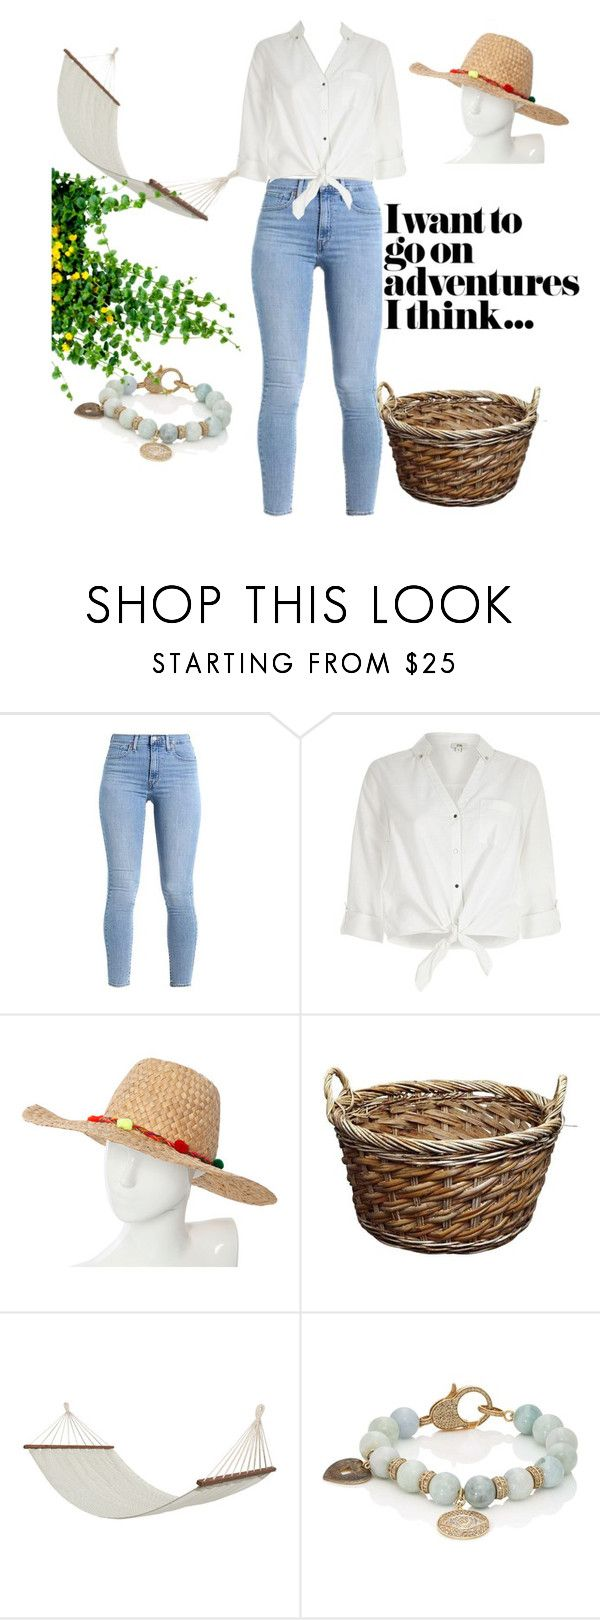 """Mississippi Swing"" by mickidavis on Polyvore featuring River Island, Pitusa, Bloomingville and Carole Shashona"